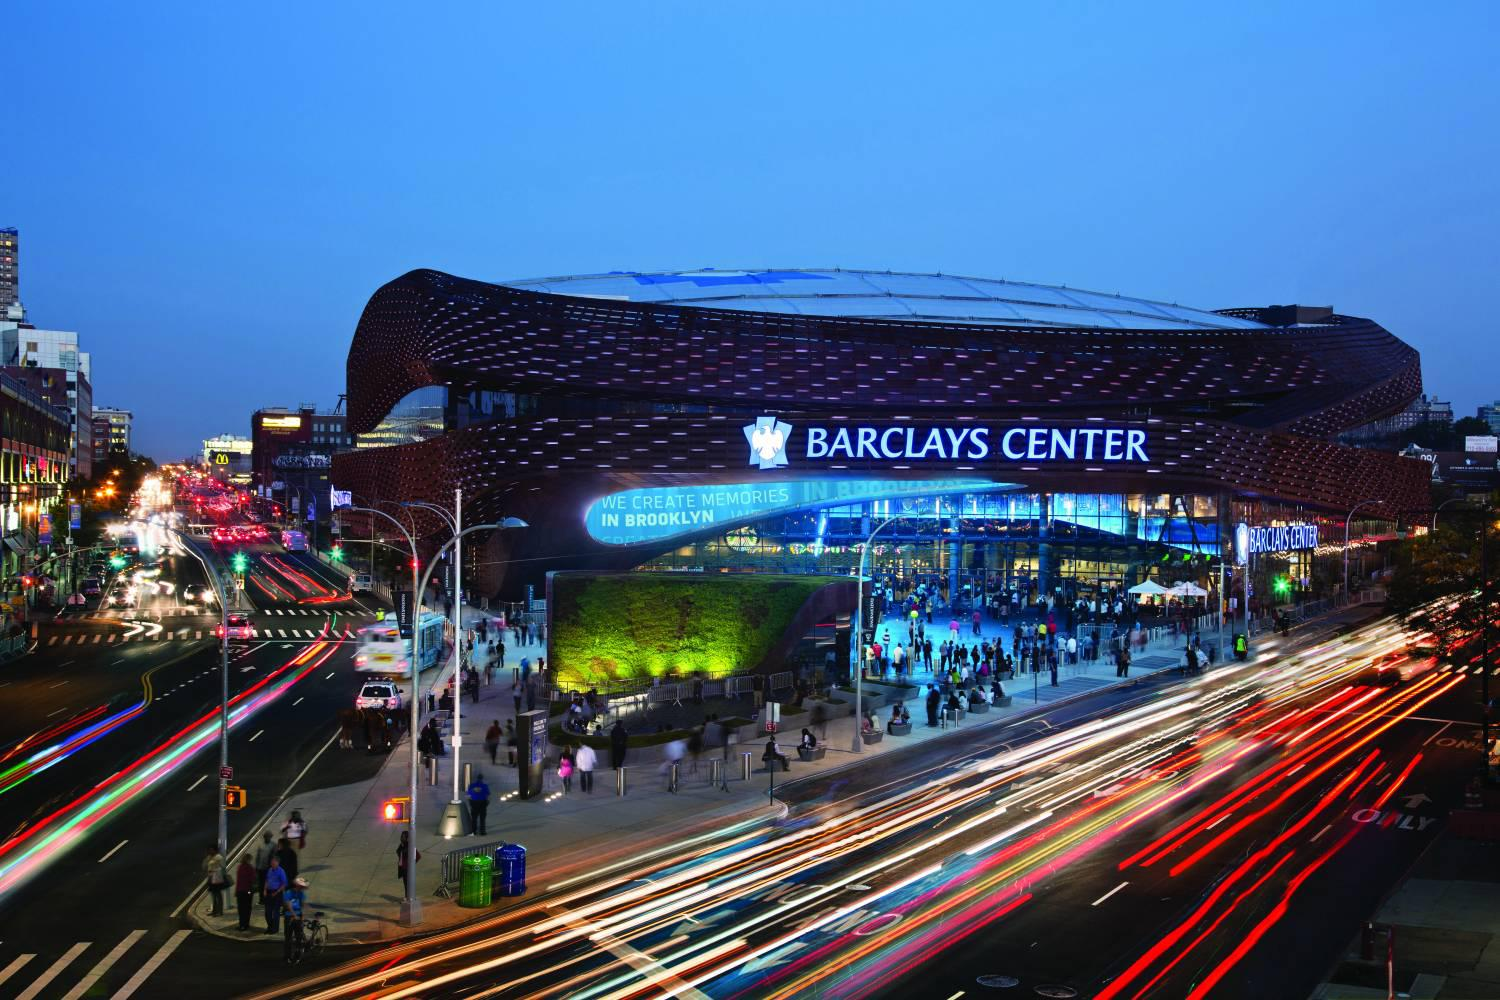 space at Barclays Center